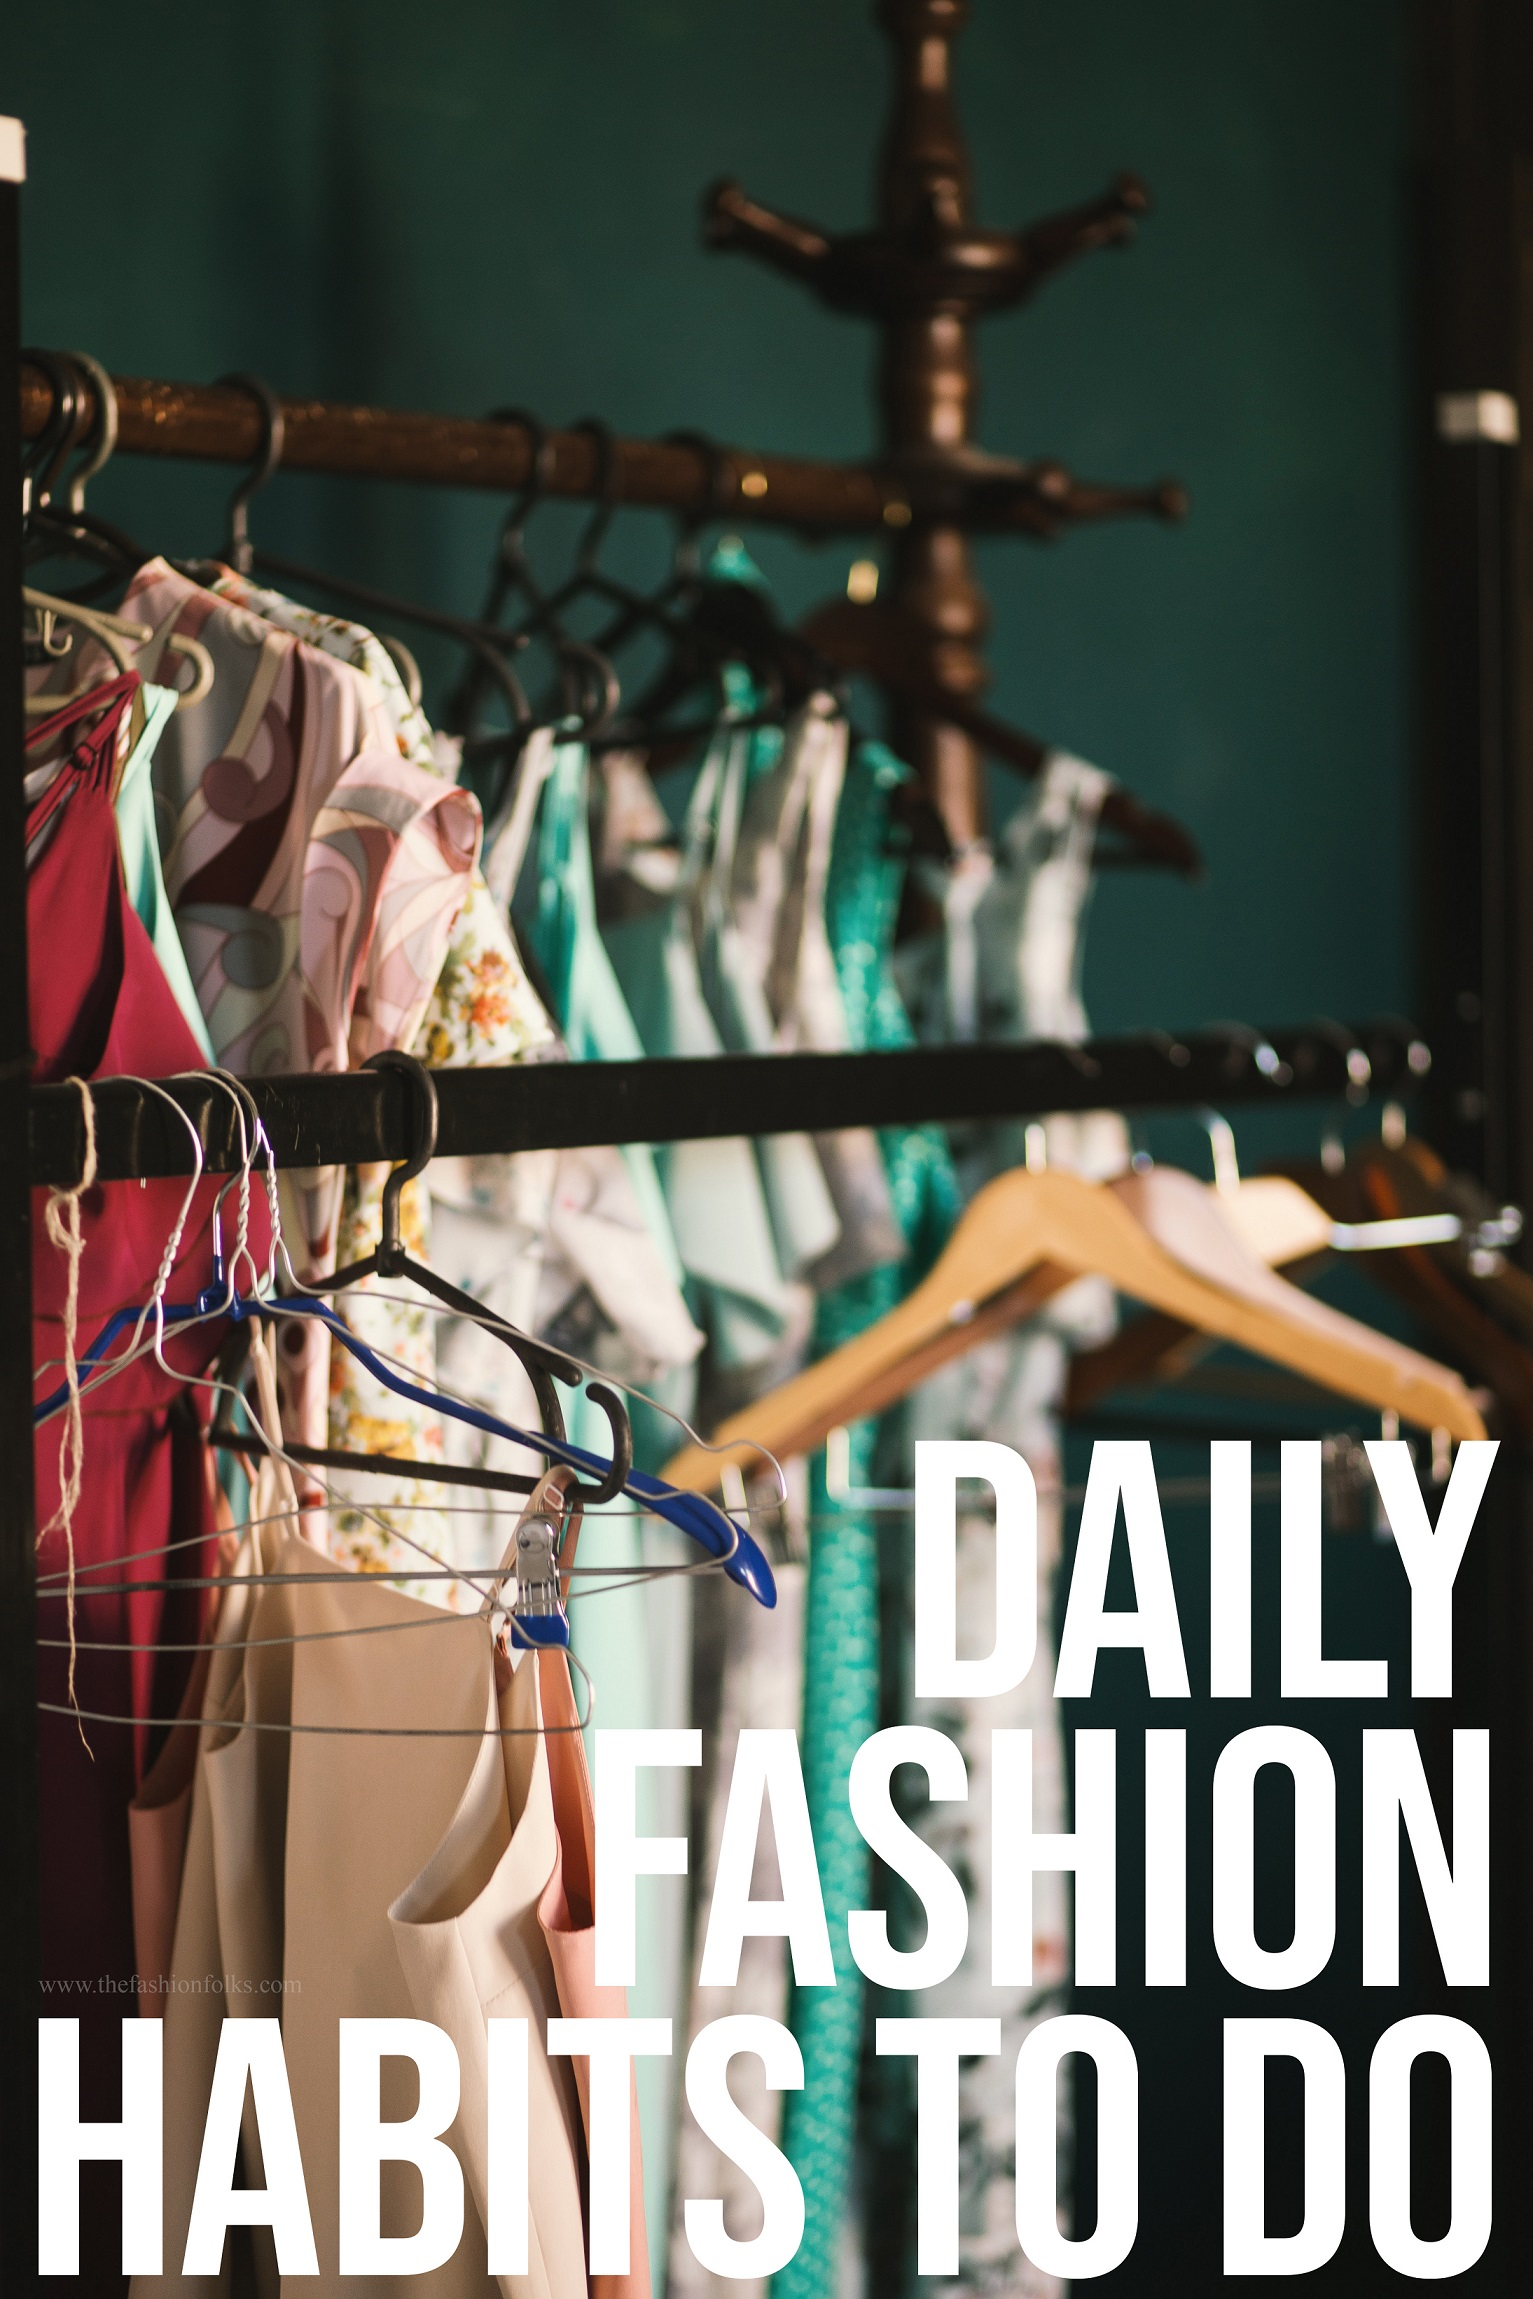 3 Daily Fashion Habits To Improve Your Style